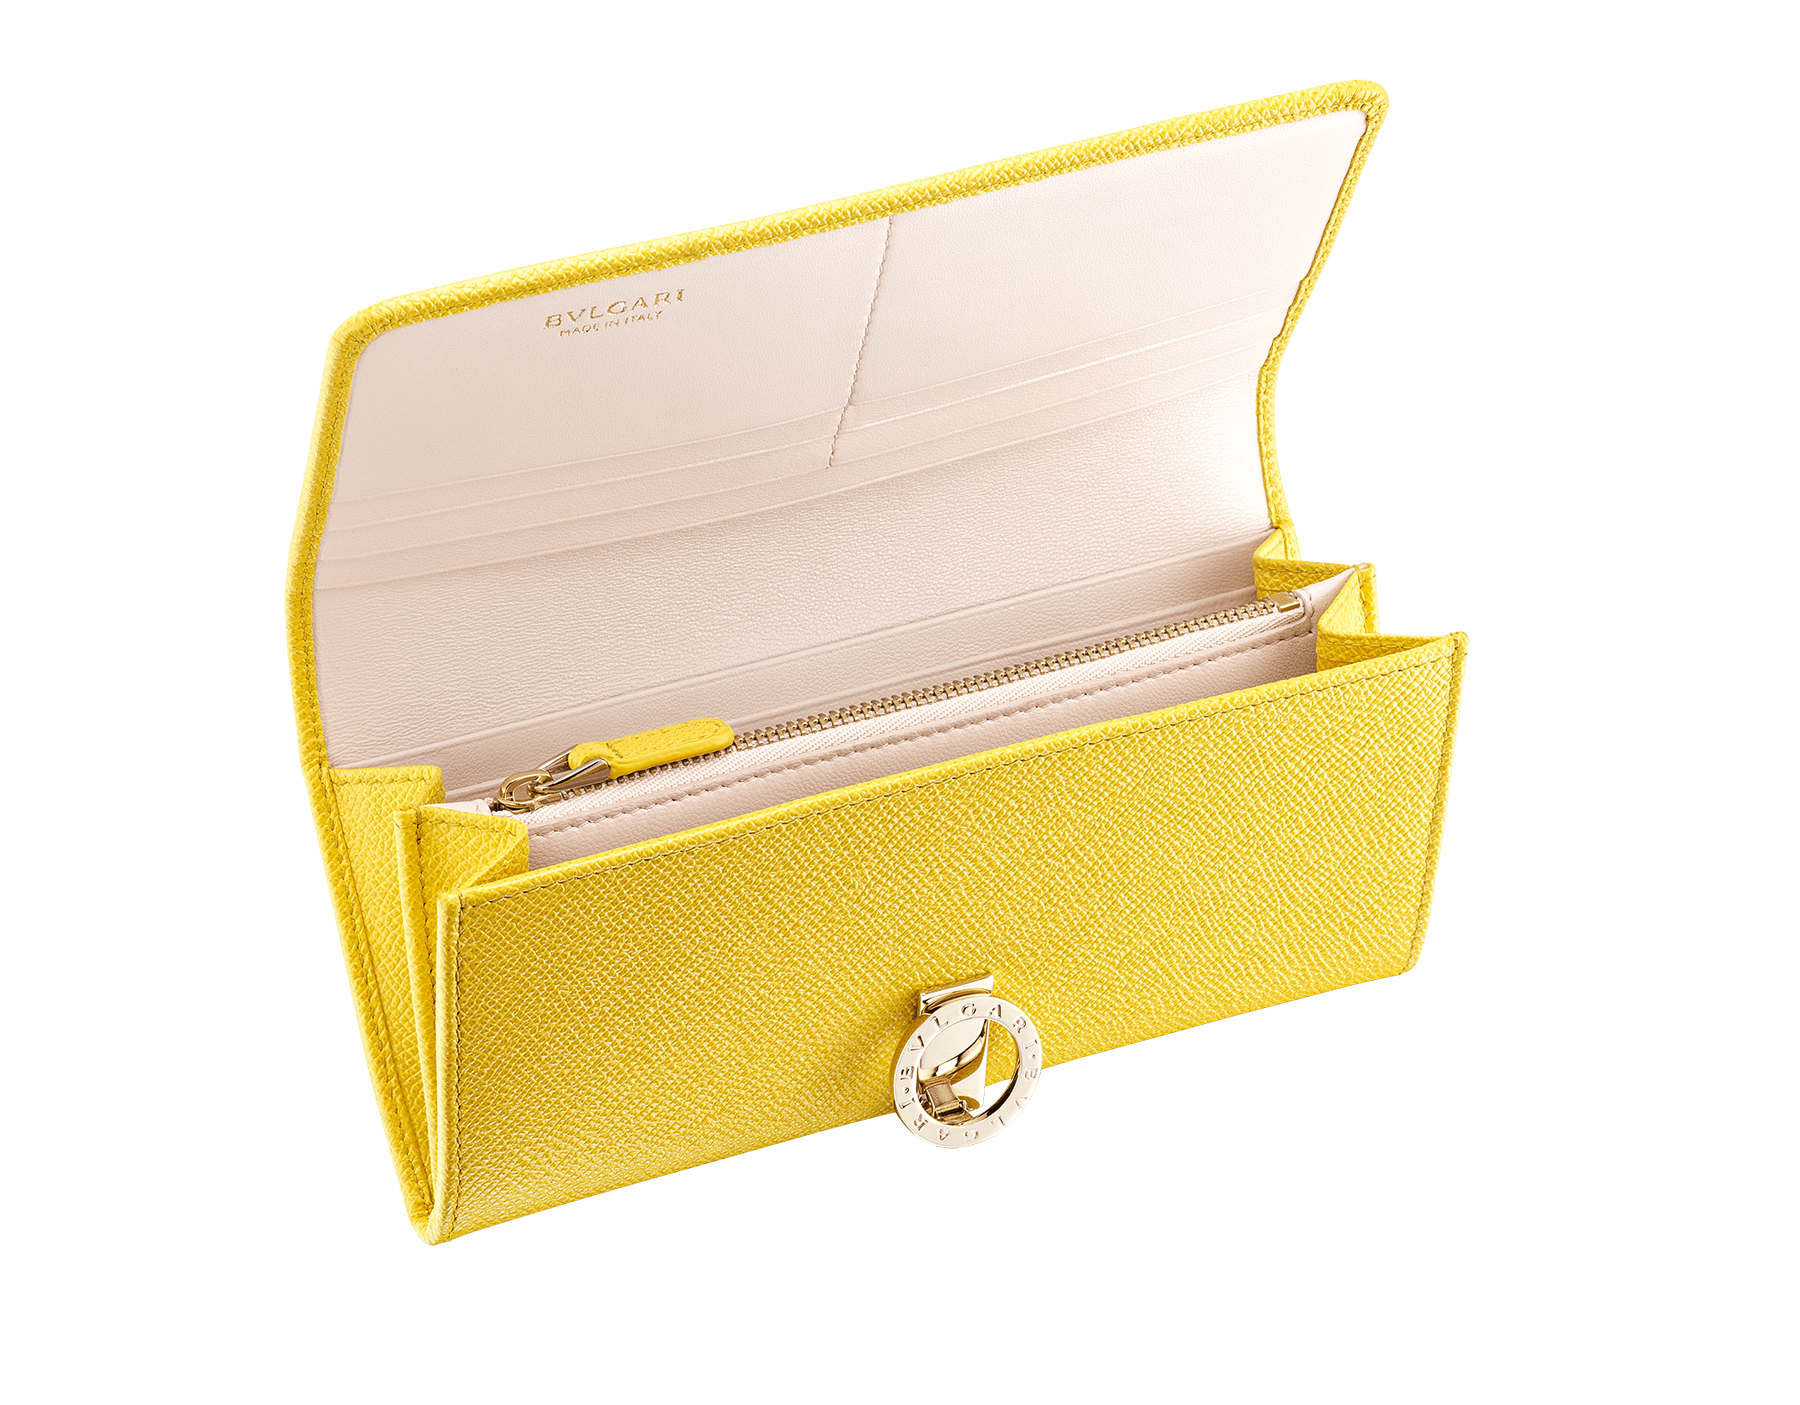 """BVLGARI BVLGARI"" large wallet in taffy quartz bright grain calf leather and berry tourmaline nappa leather. Iconic logo clip closure in light gold plated brass. 579-WLT-SLI-POC-CLb image 2"